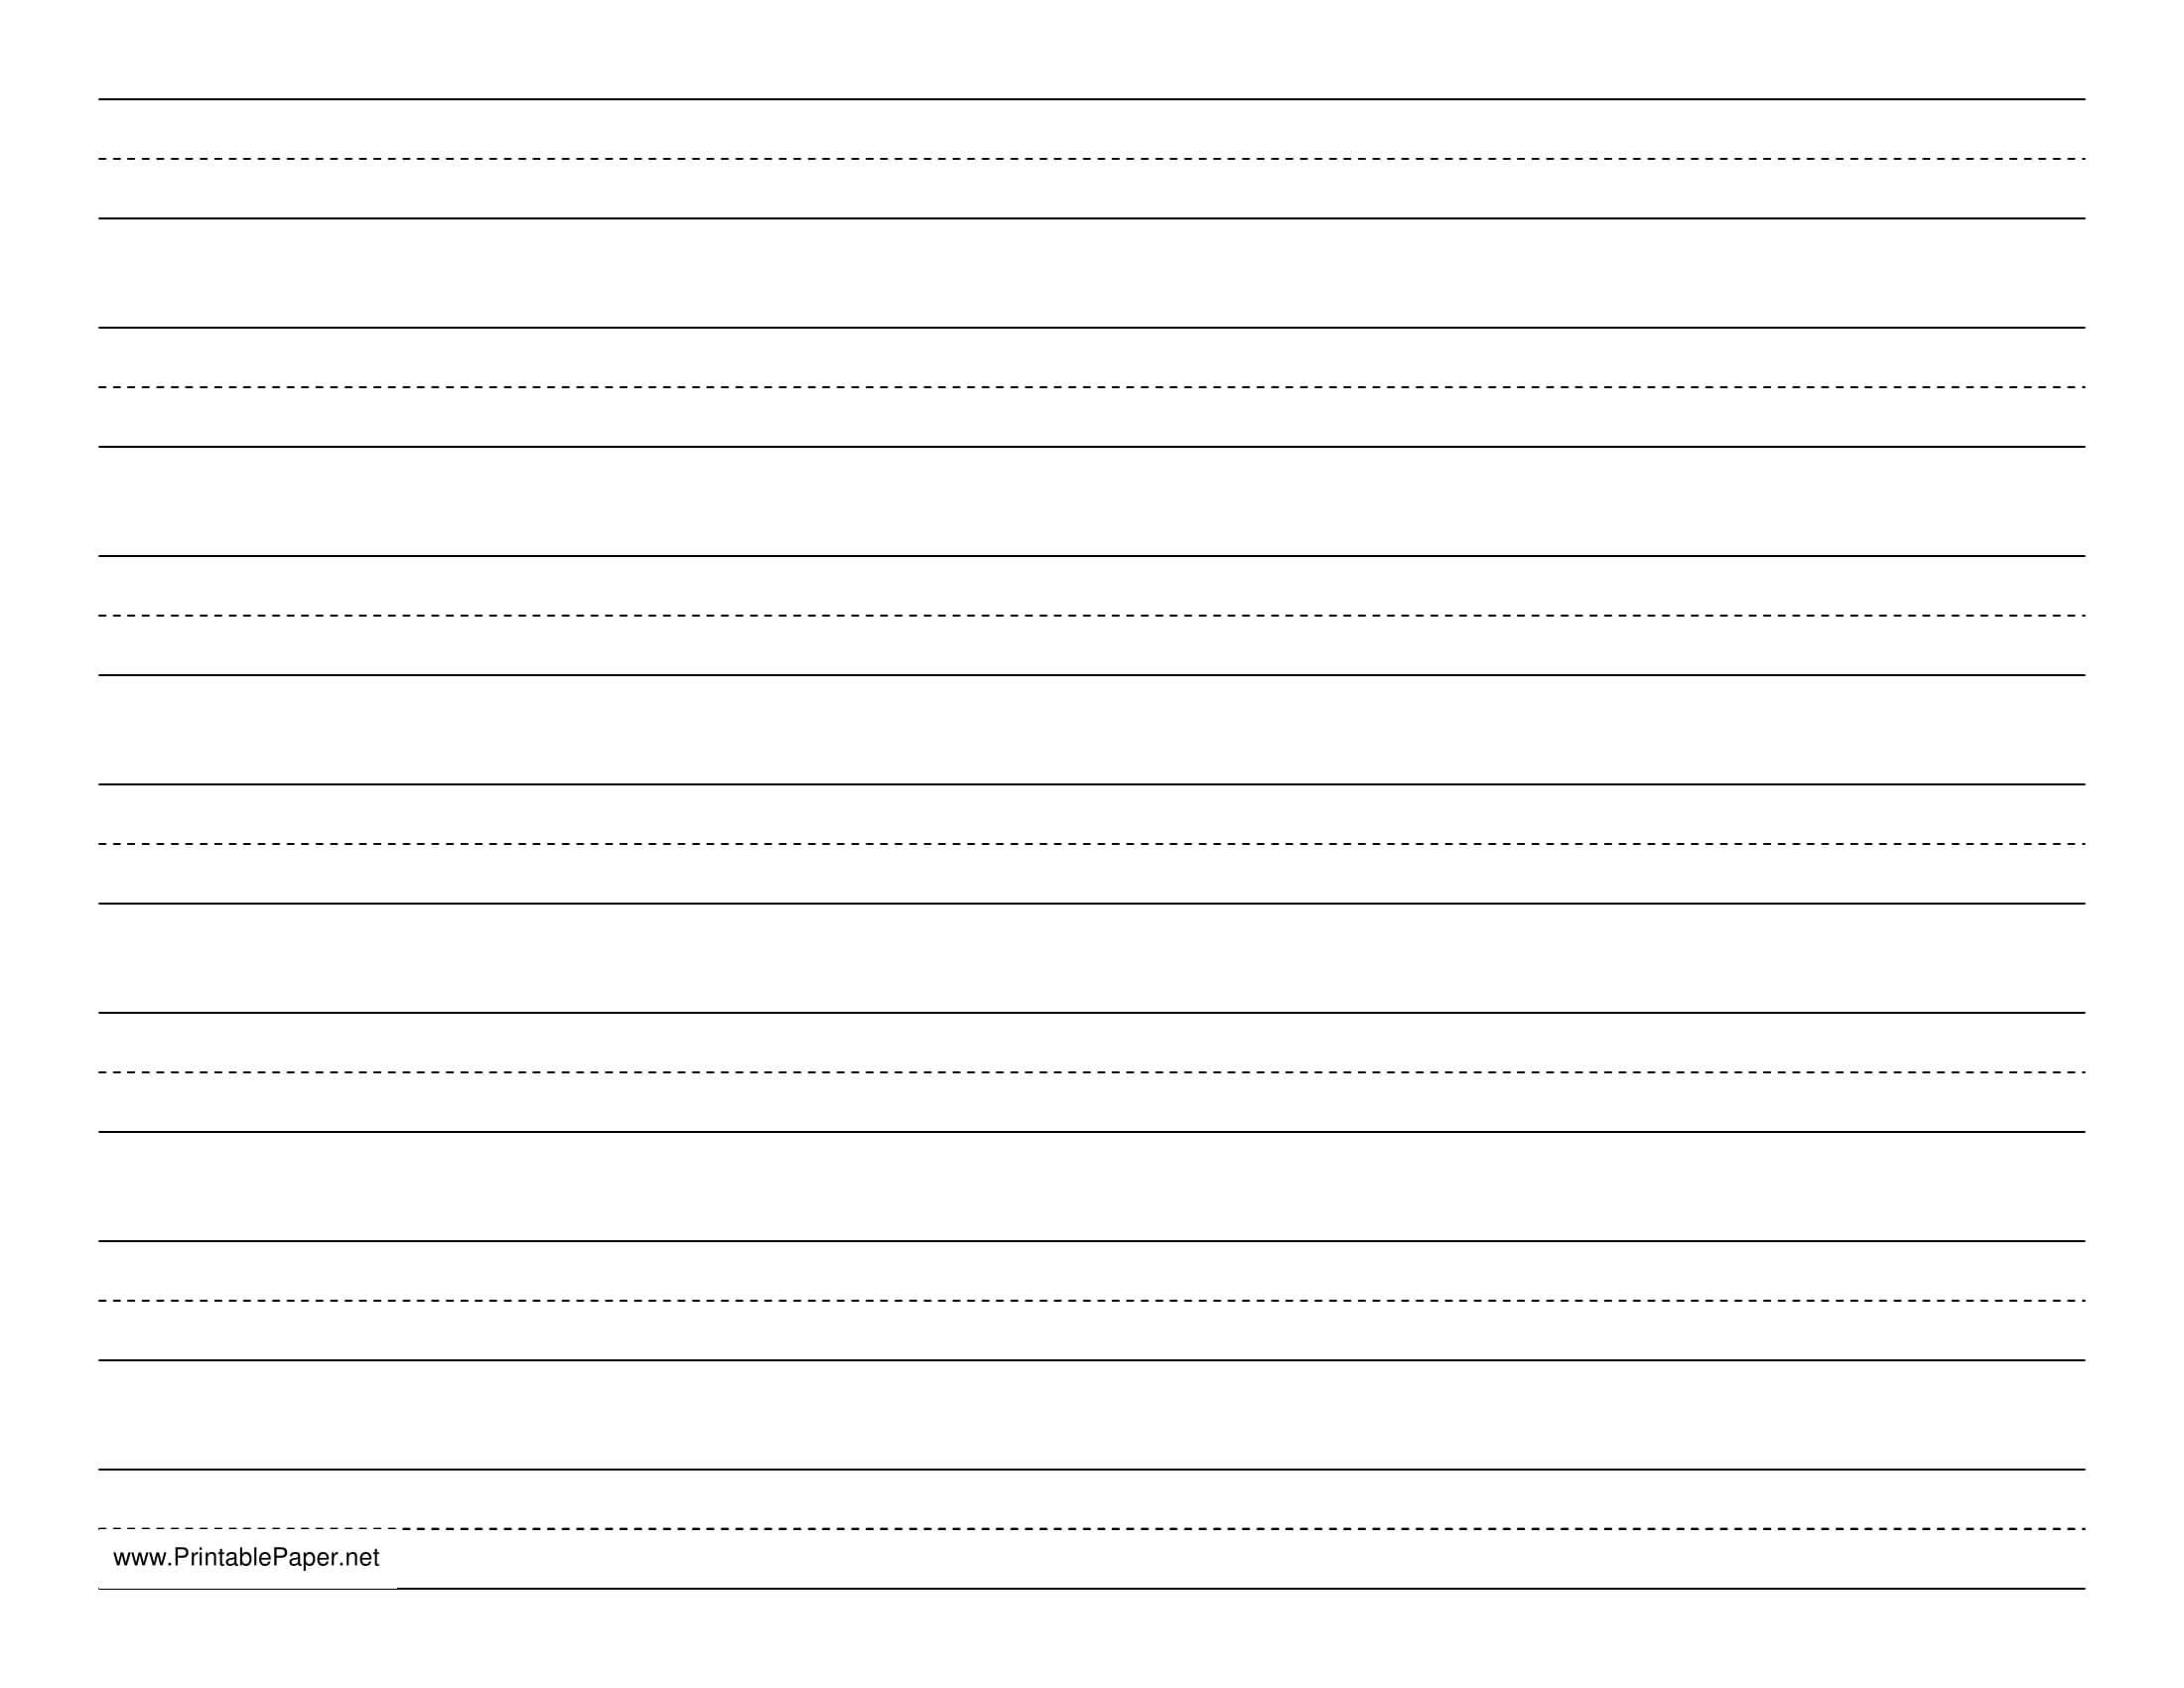 manuscript ruled paper template